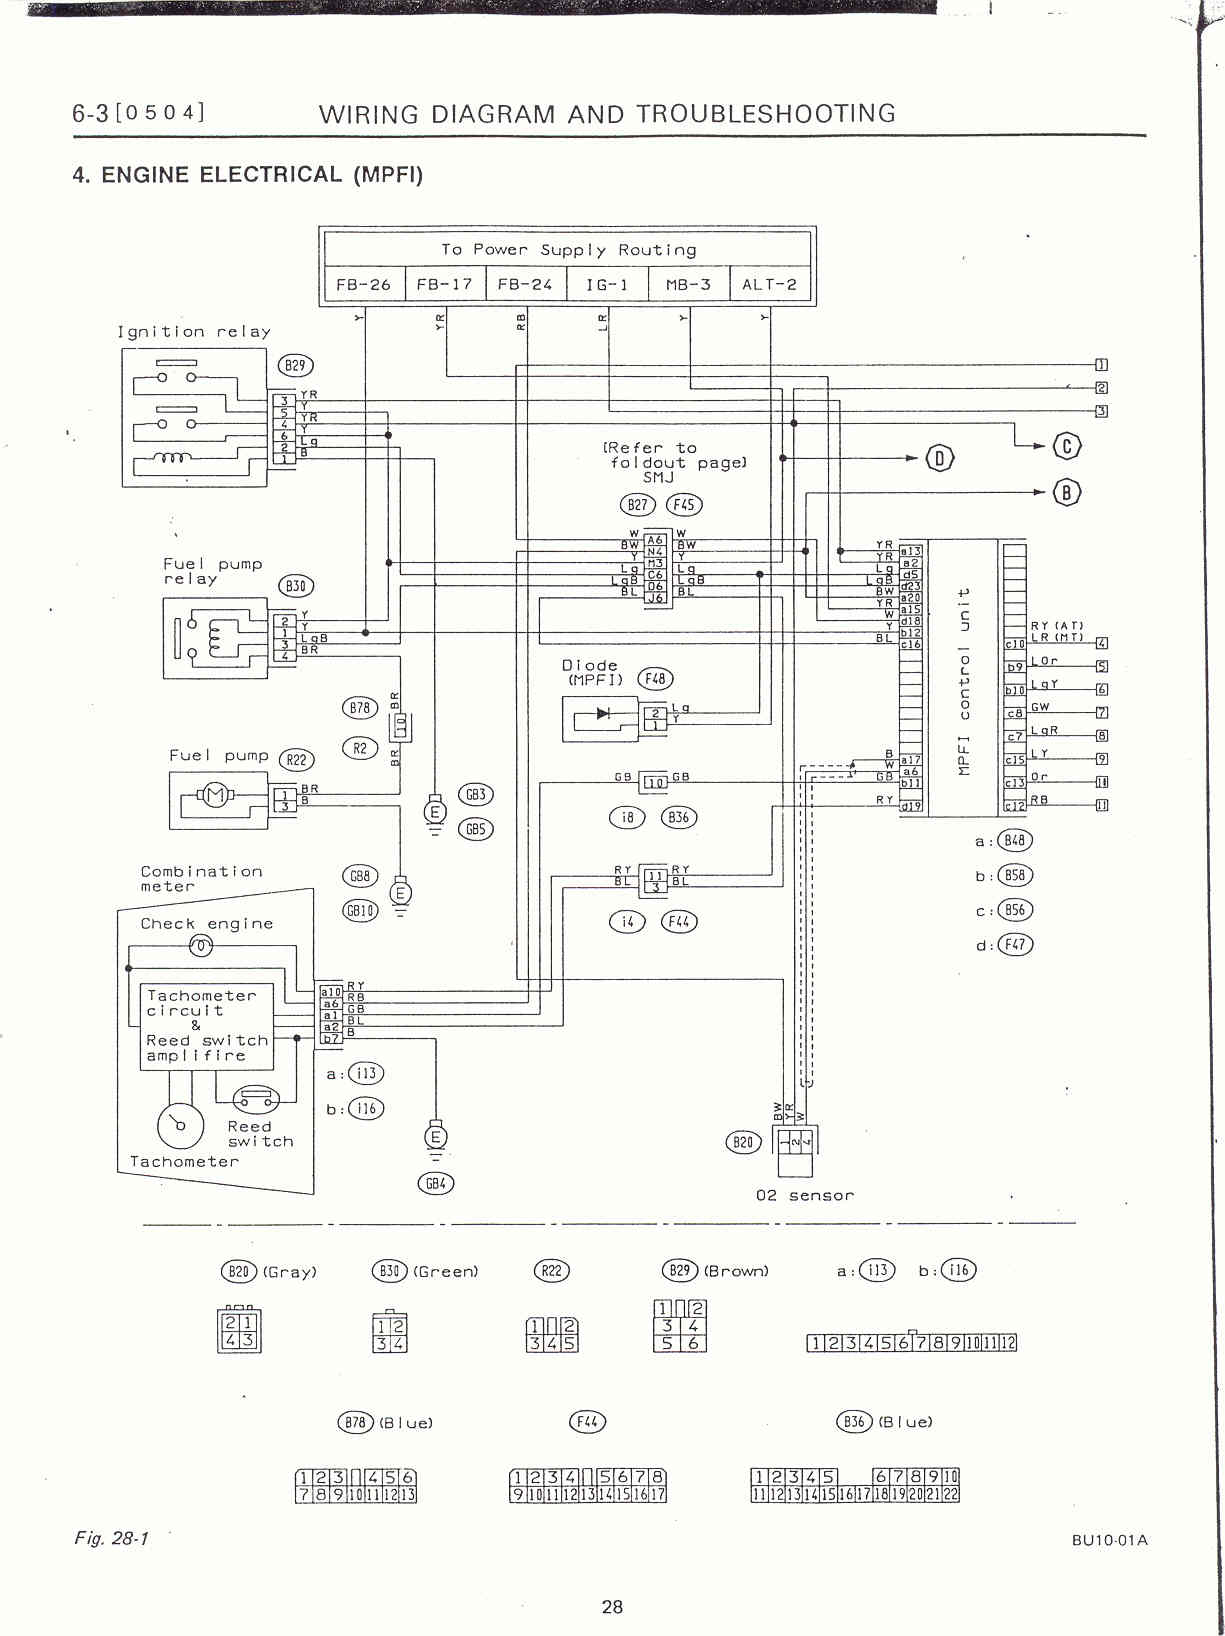 2002 subaru engine wiring harness diagram 20 4 cryptopotato co \u2022 Subaru Gauge Fuse Wiring Diagrams 2002 subaru wire harness diagram data wiring diagram rh 10 inloggenbank nl 05 sti subaru wiring